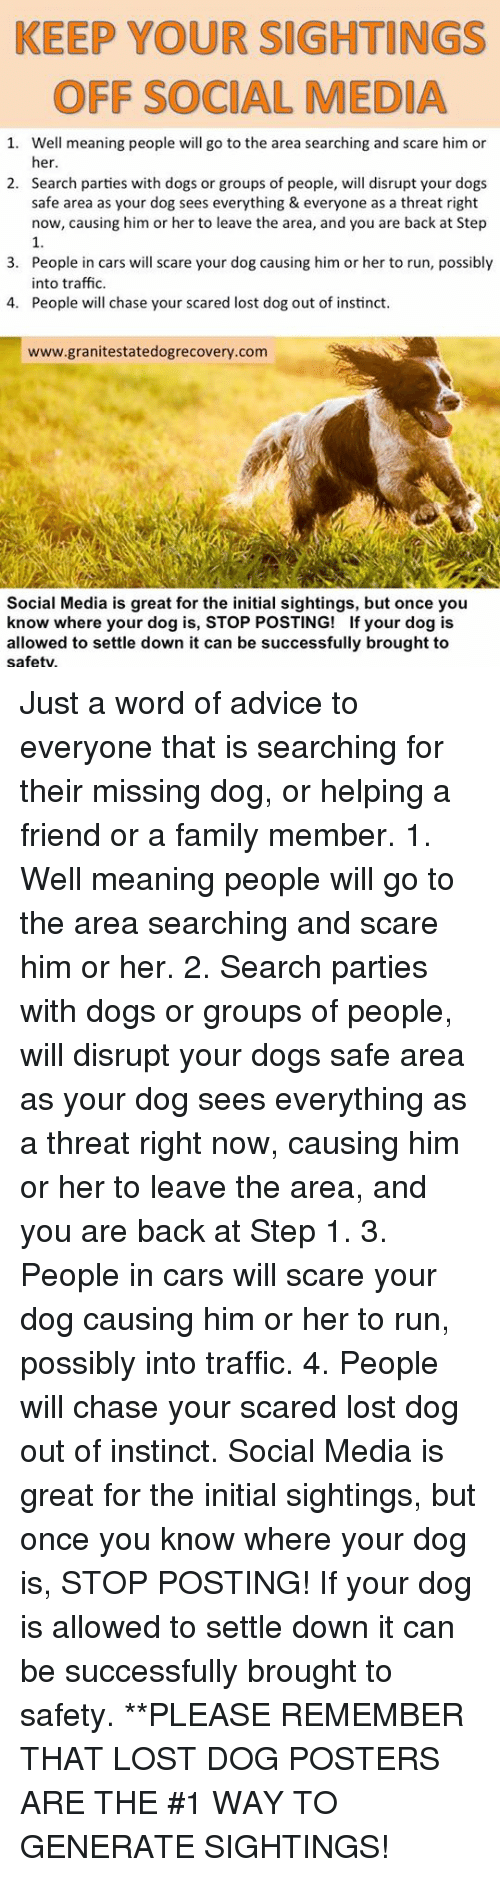 Advice, Cars, and Dogs: KEEP YOUR SIGHTINGS  OFF SOCIAL MEDIA  1. Well meaning people will go to the area searching and scare him or  her  Search parties with dogs or groups of people, will disrupt your dogs  safe area as your dog sees everything & everyone as a threat right  now, causing him or her to leave the area, and you are back at Step  1.  People in cars will scare your dog causing him or her to run, possibly  into traffic.  People will chase your scared lost dog out of instinct.  2.  3.  4.  www.granitestatedogrecovery.com  Social Media is great for the initial sightings, but once you  know where your dog is, STOP POSTING! If your dog is  allowed to settle down it can be successfully brought to  safety Just a word of advice to everyone that is searching for their missing dog, or helping a friend or a family member.  1. Well meaning people will go to the area searching and scare him or her. 2. Search parties with dogs or groups of people, will disrupt your dogs safe area as your dog sees everything as a threat right now, causing him or her to leave the area, and you are back at Step 1. 3. People in cars will scare your dog causing him or her to run, possibly into traffic.  4. People will chase your scared lost dog out of instinct.  Social Media is great for the initial sightings, but once you know where your dog is, STOP POSTING! If your dog is allowed to settle down it can be successfully brought to safety.  **PLEASE REMEMBER THAT LOST DOG POSTERS ARE THE #1 WAY TO GENERATE SIGHTINGS!